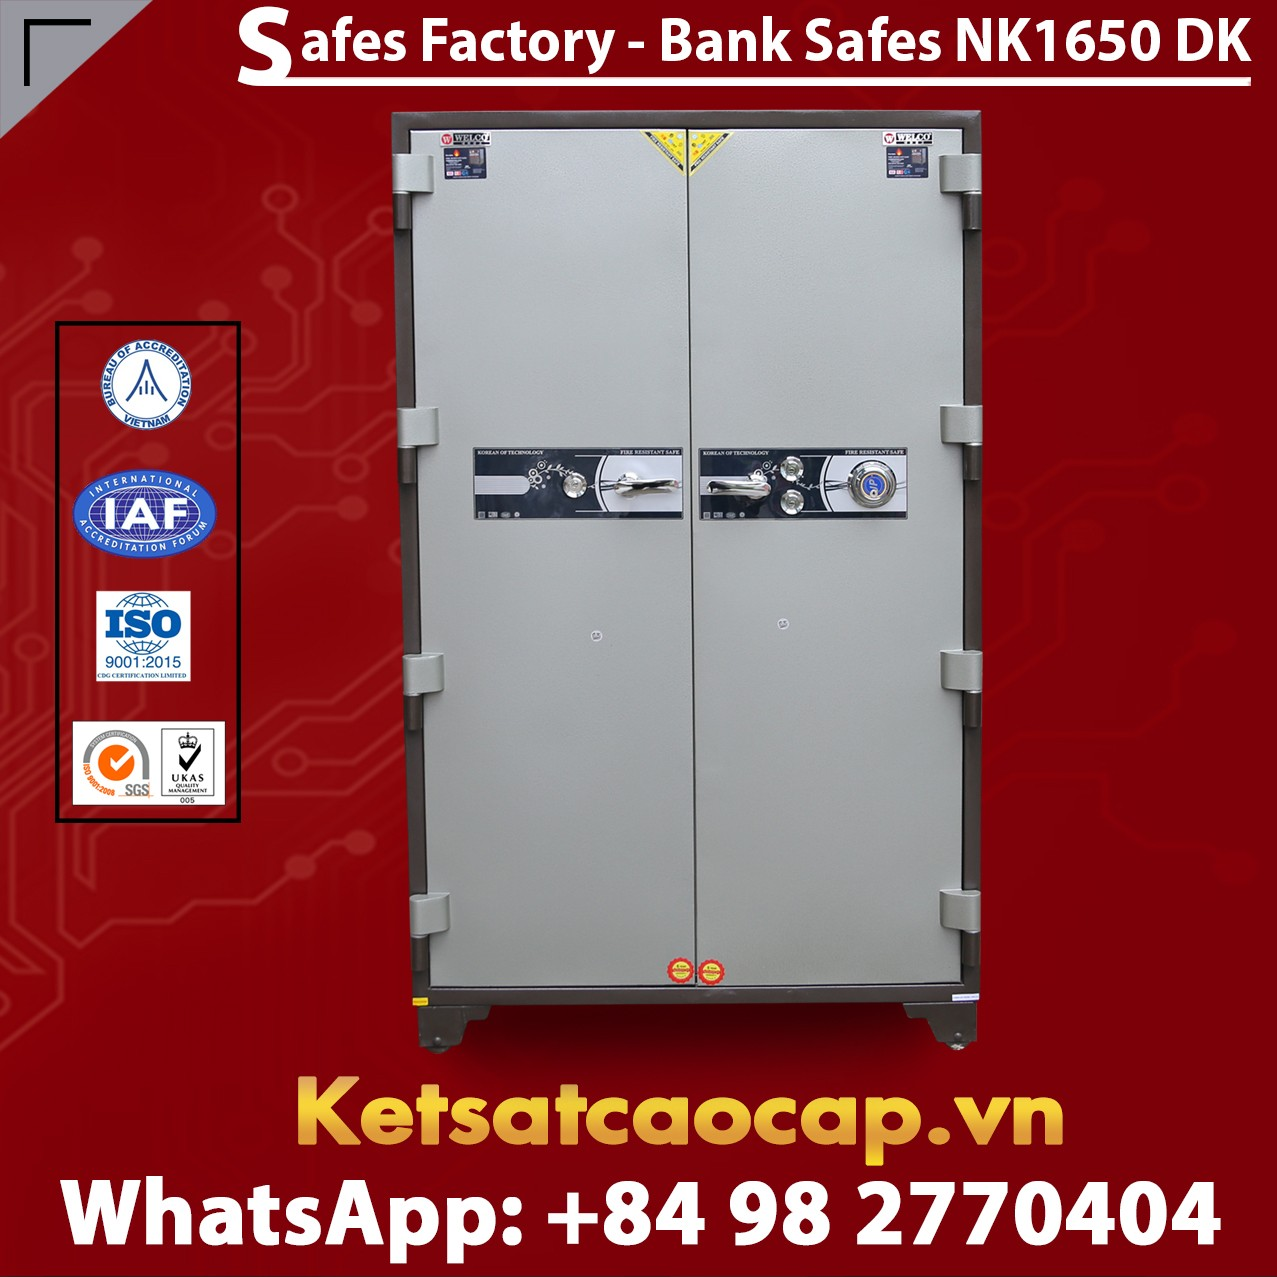 Bank Safes Box Manufacturers